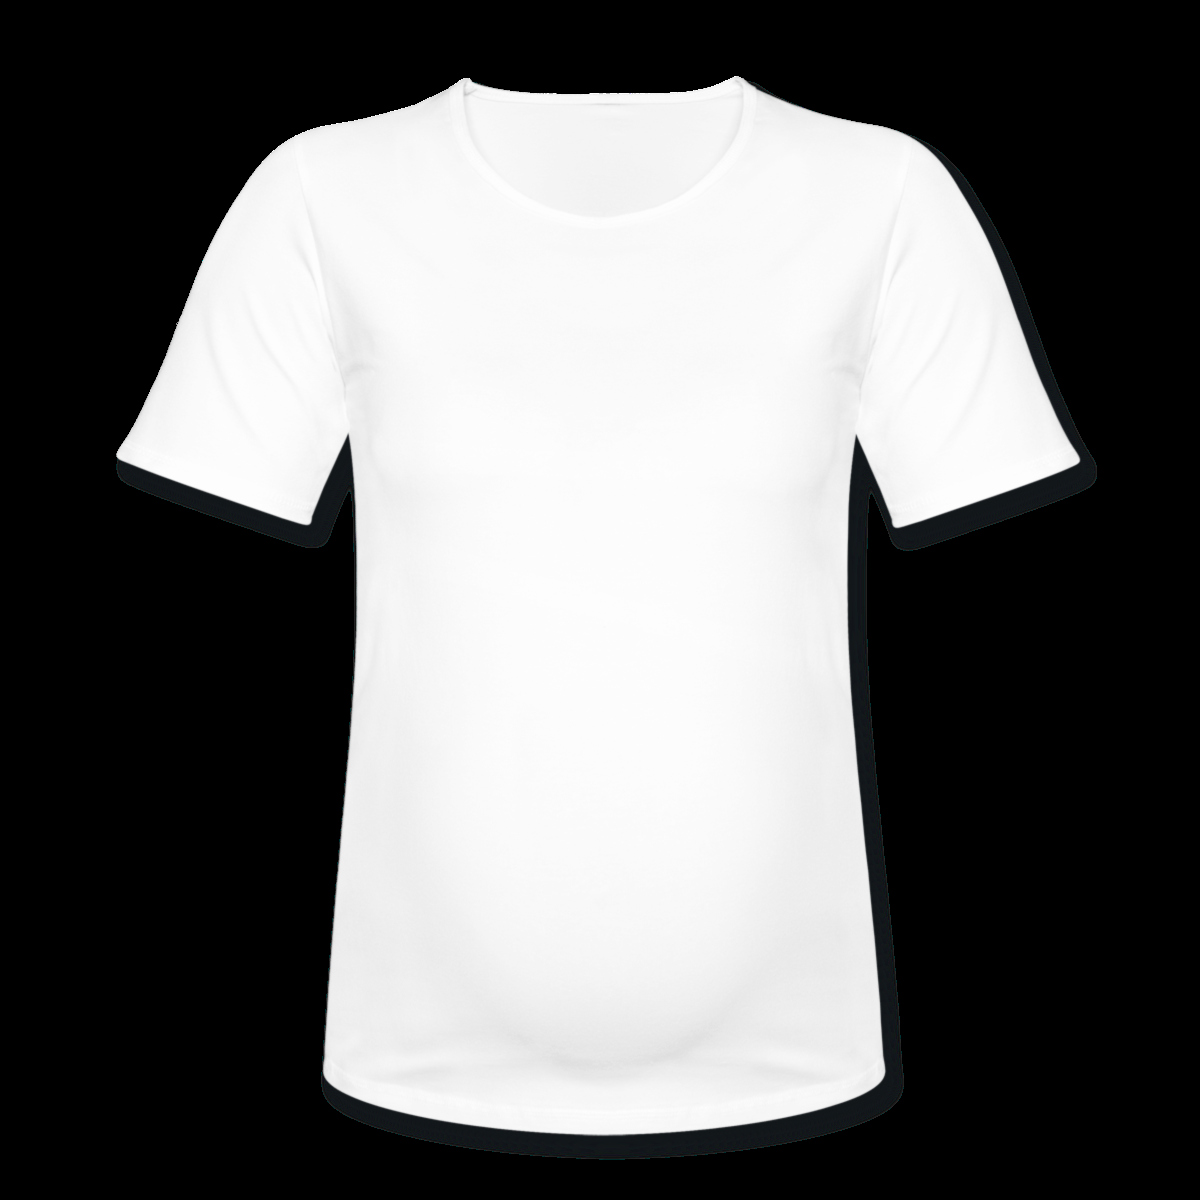 Blank Tshirt Template Lovely Free Blank T Shirts Download Free Clip Art Free Clip Art